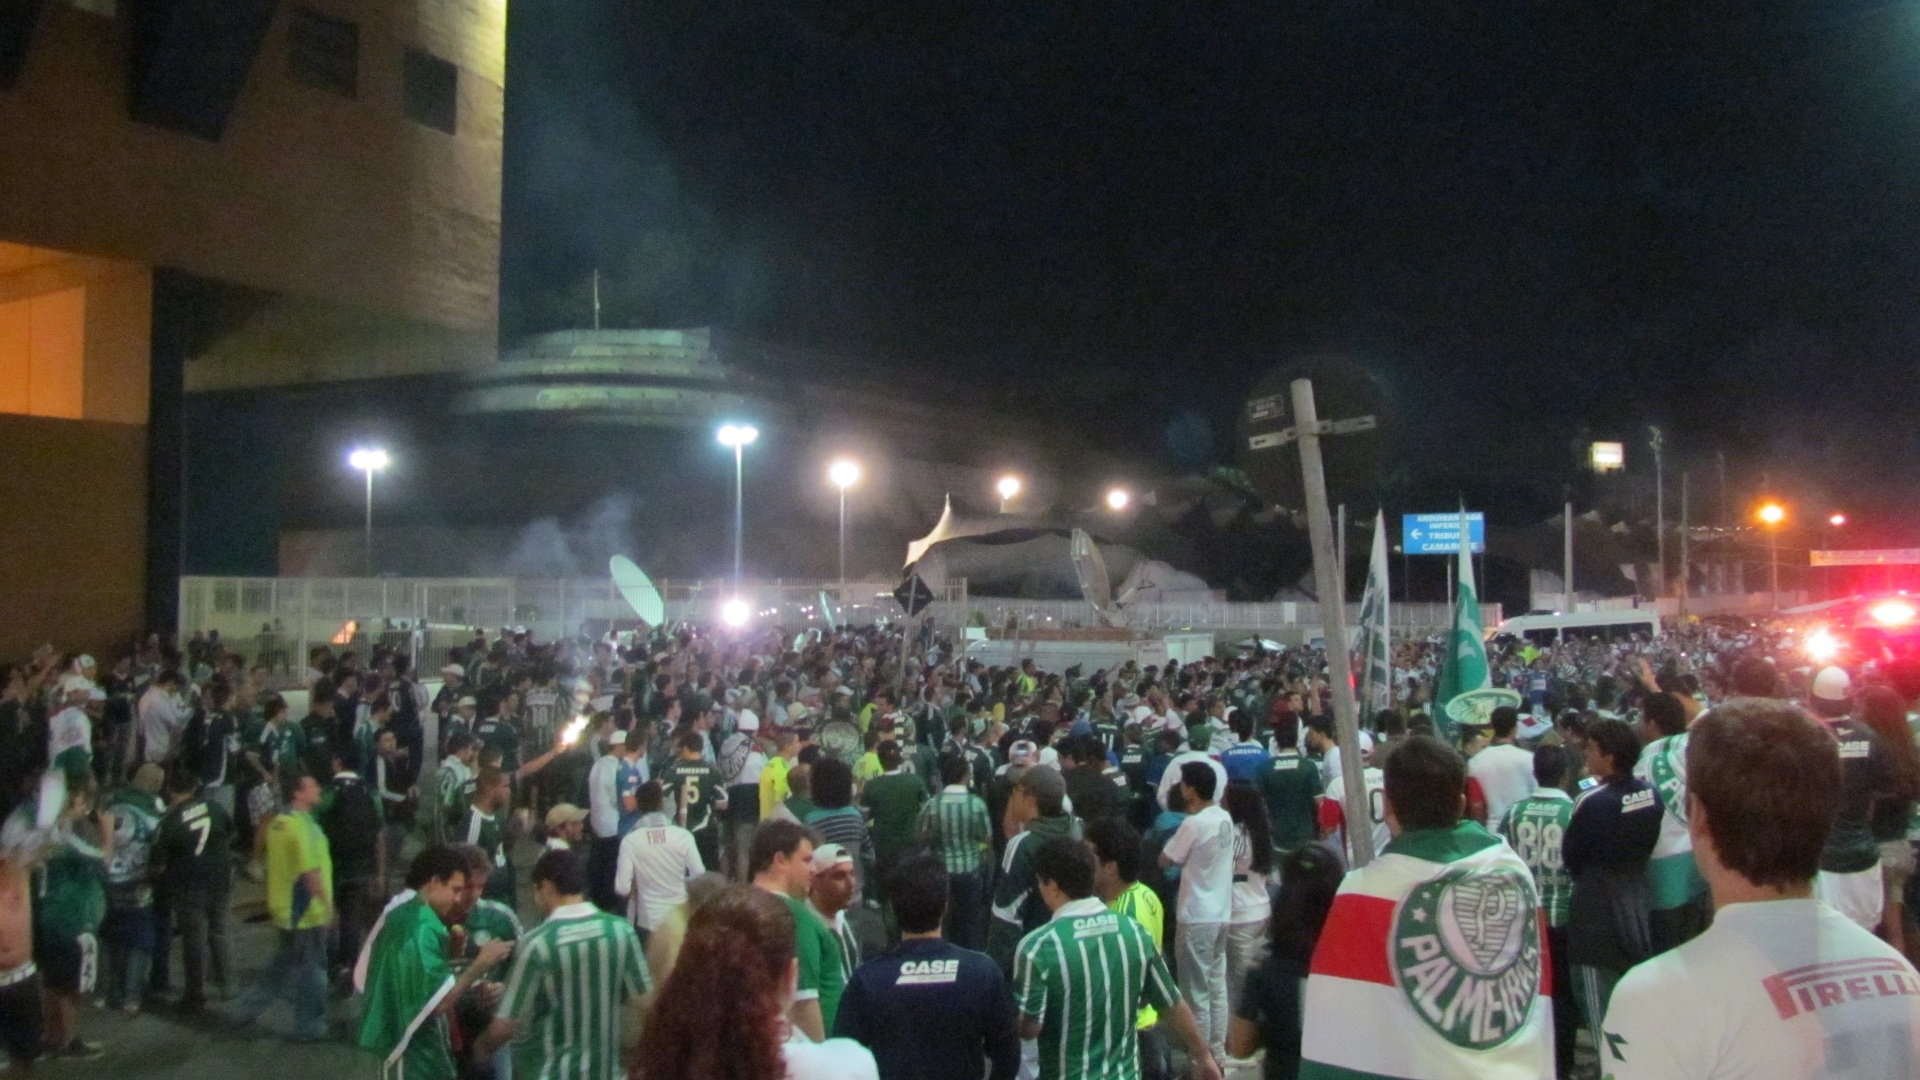 Torcida do Palmeiras circula em bom nmero pelos arredores da Arena Barueri